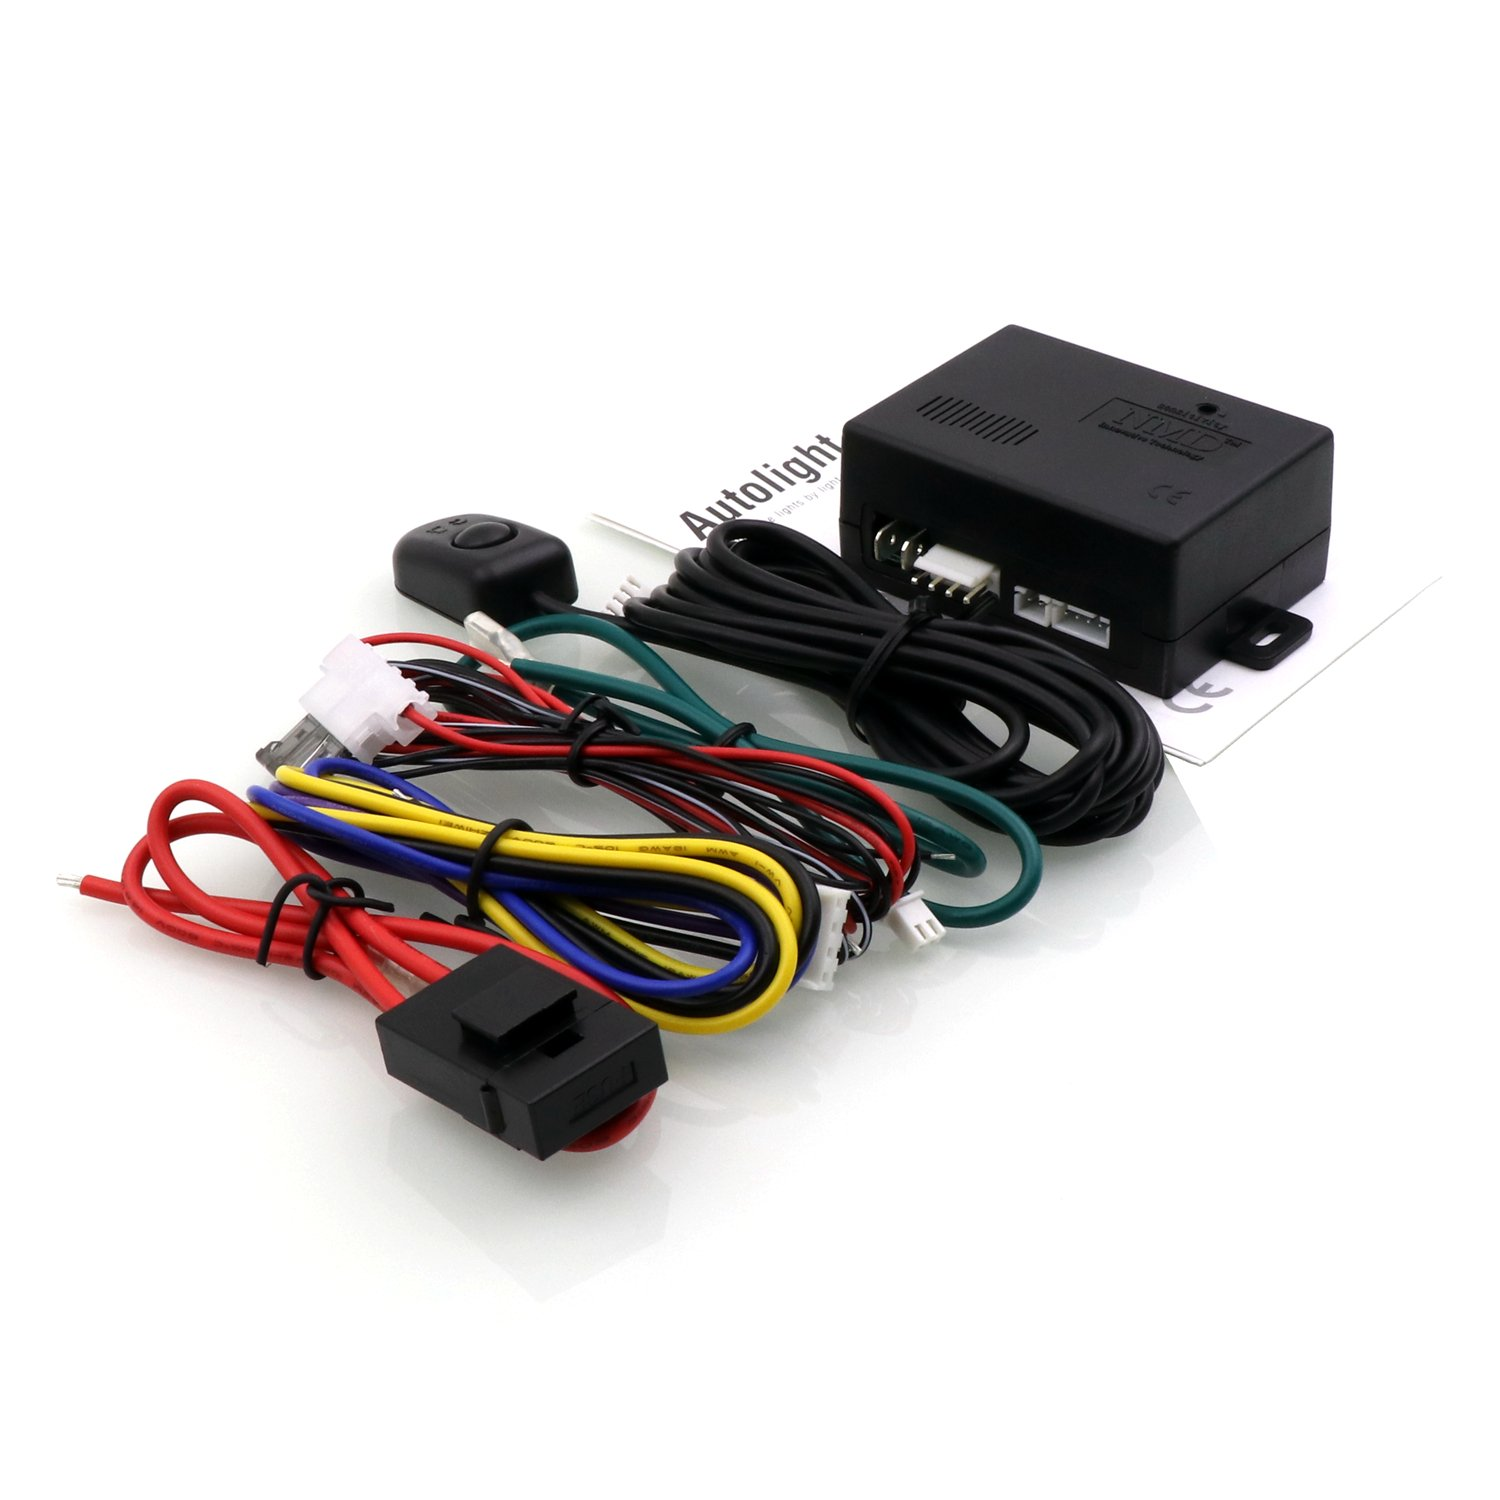 Car Auto Light Sensor System Safety Accessories American Wire Wiring Diagram Automatically Control The Lights On And Off By 12v Automotive